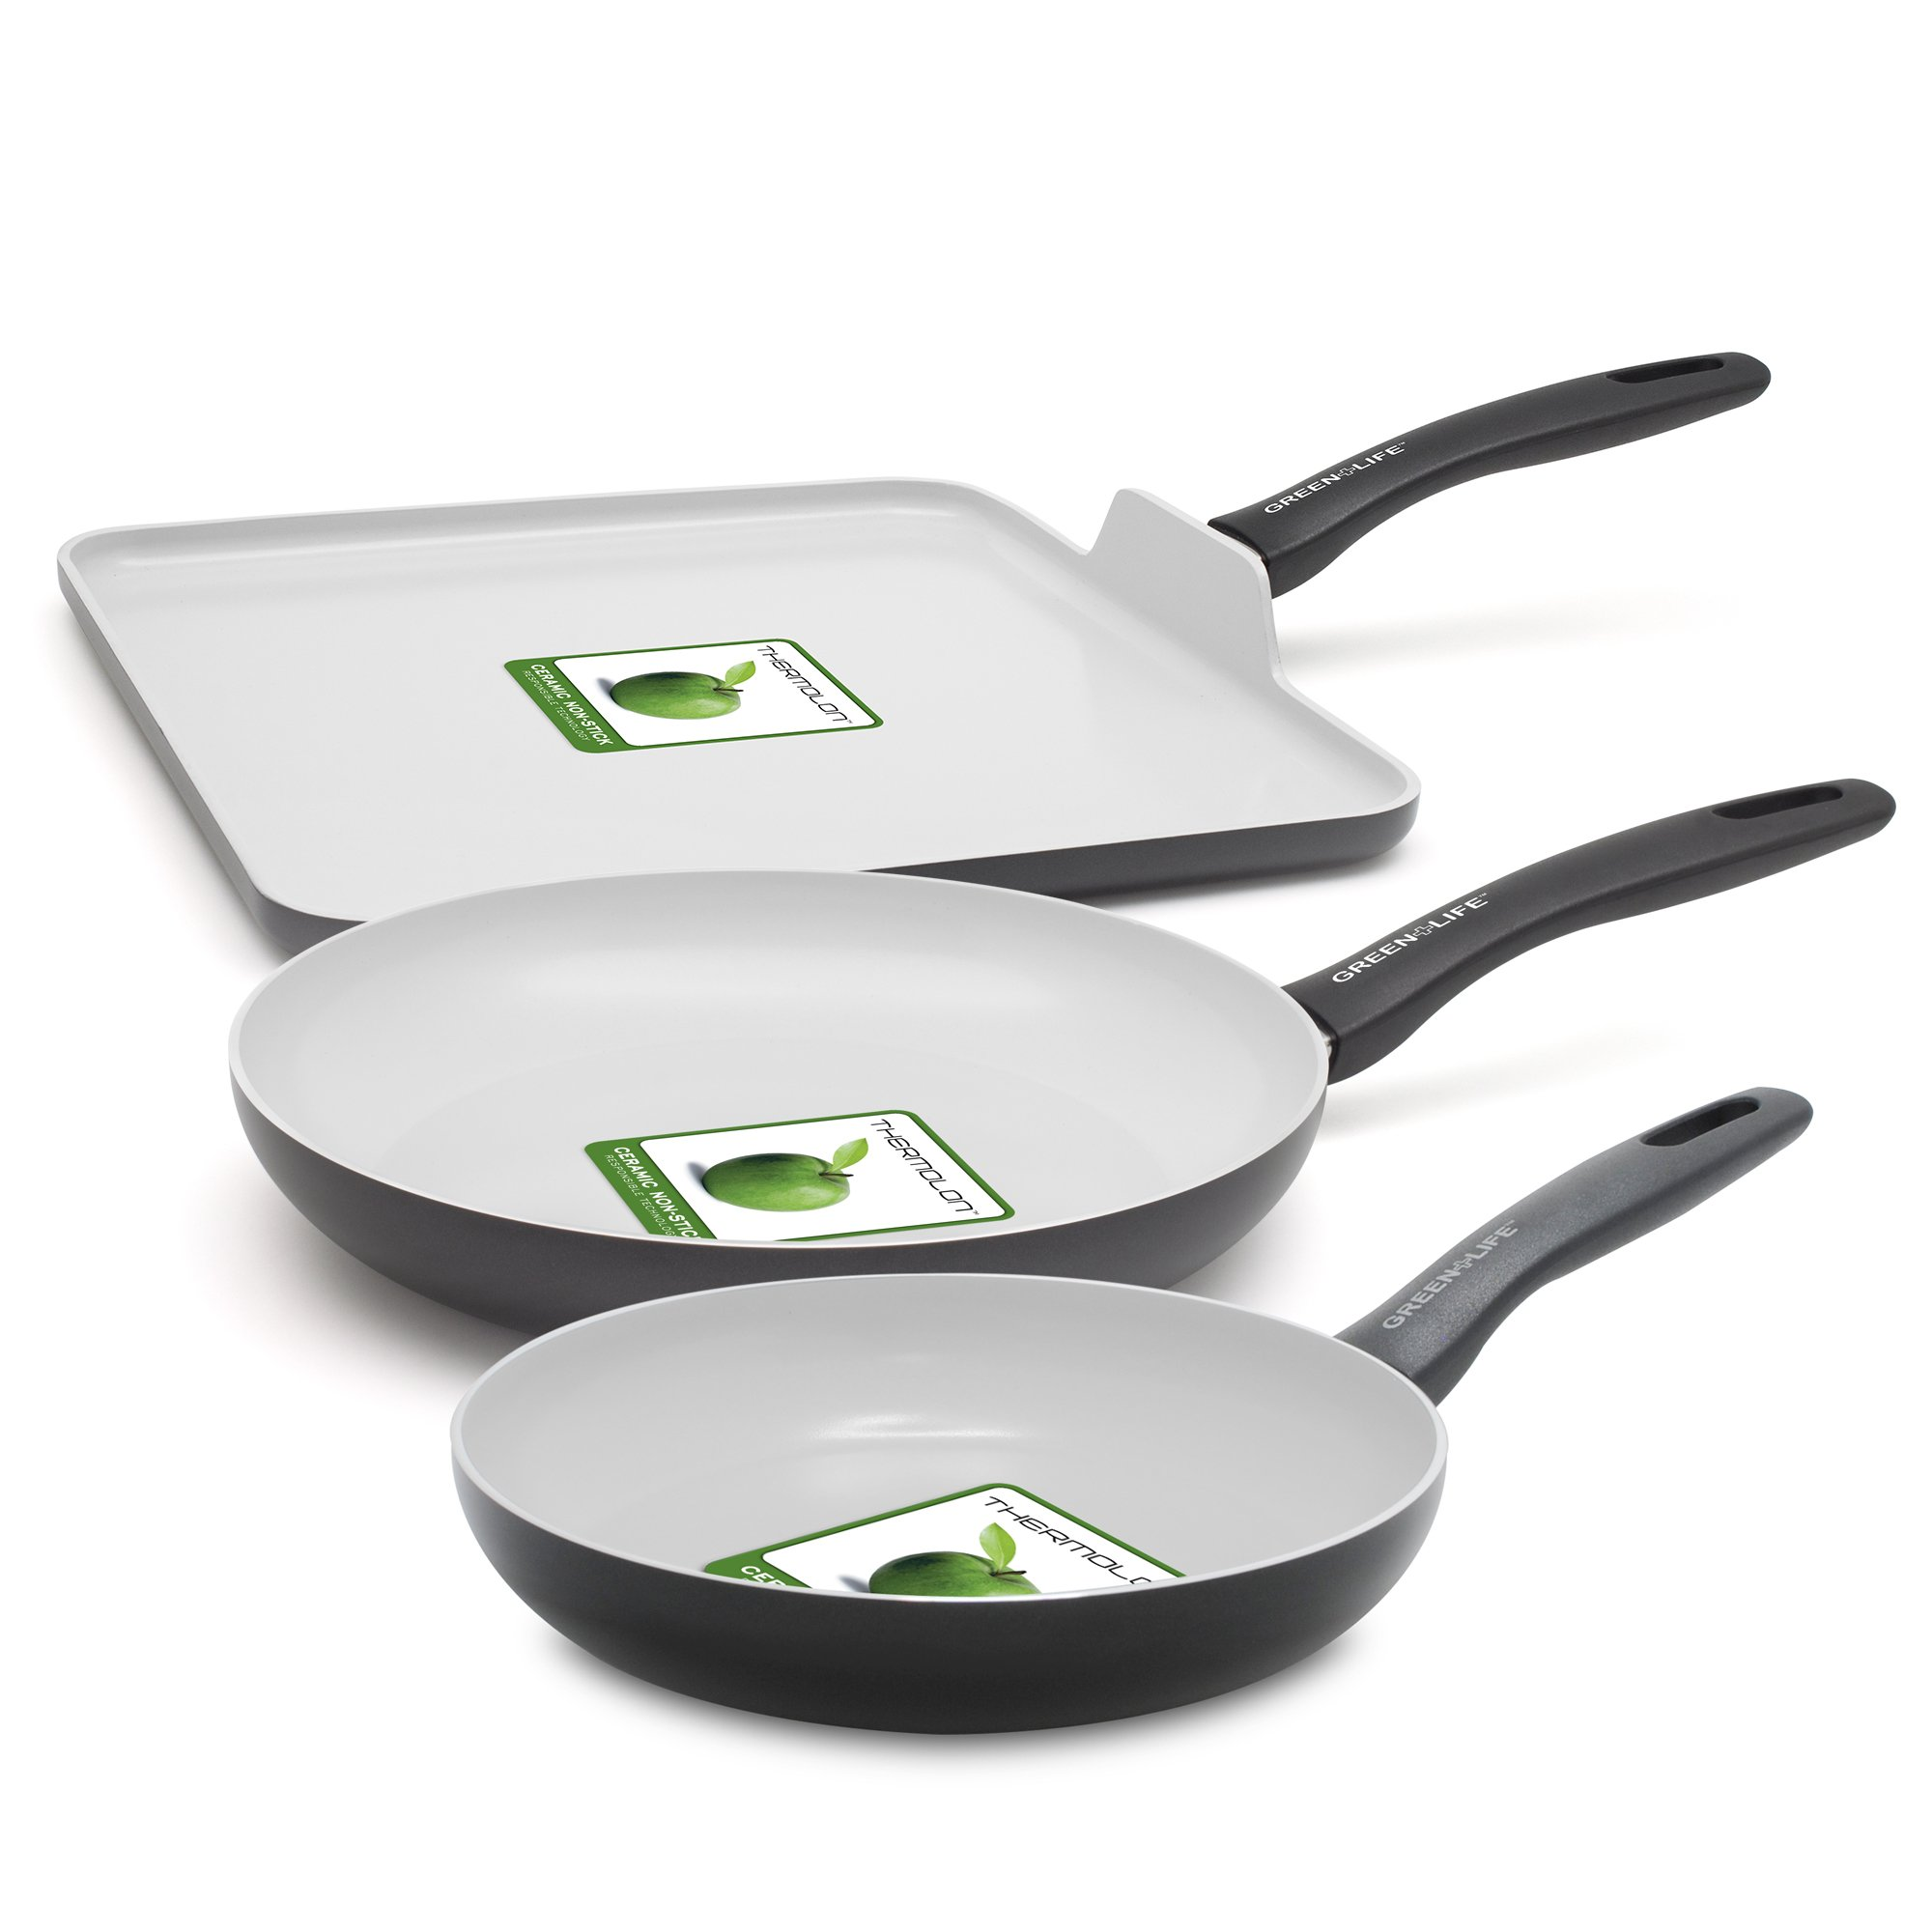 GreenLife 3 Piece Everyday Value ceramic Non-Stick Set, Black